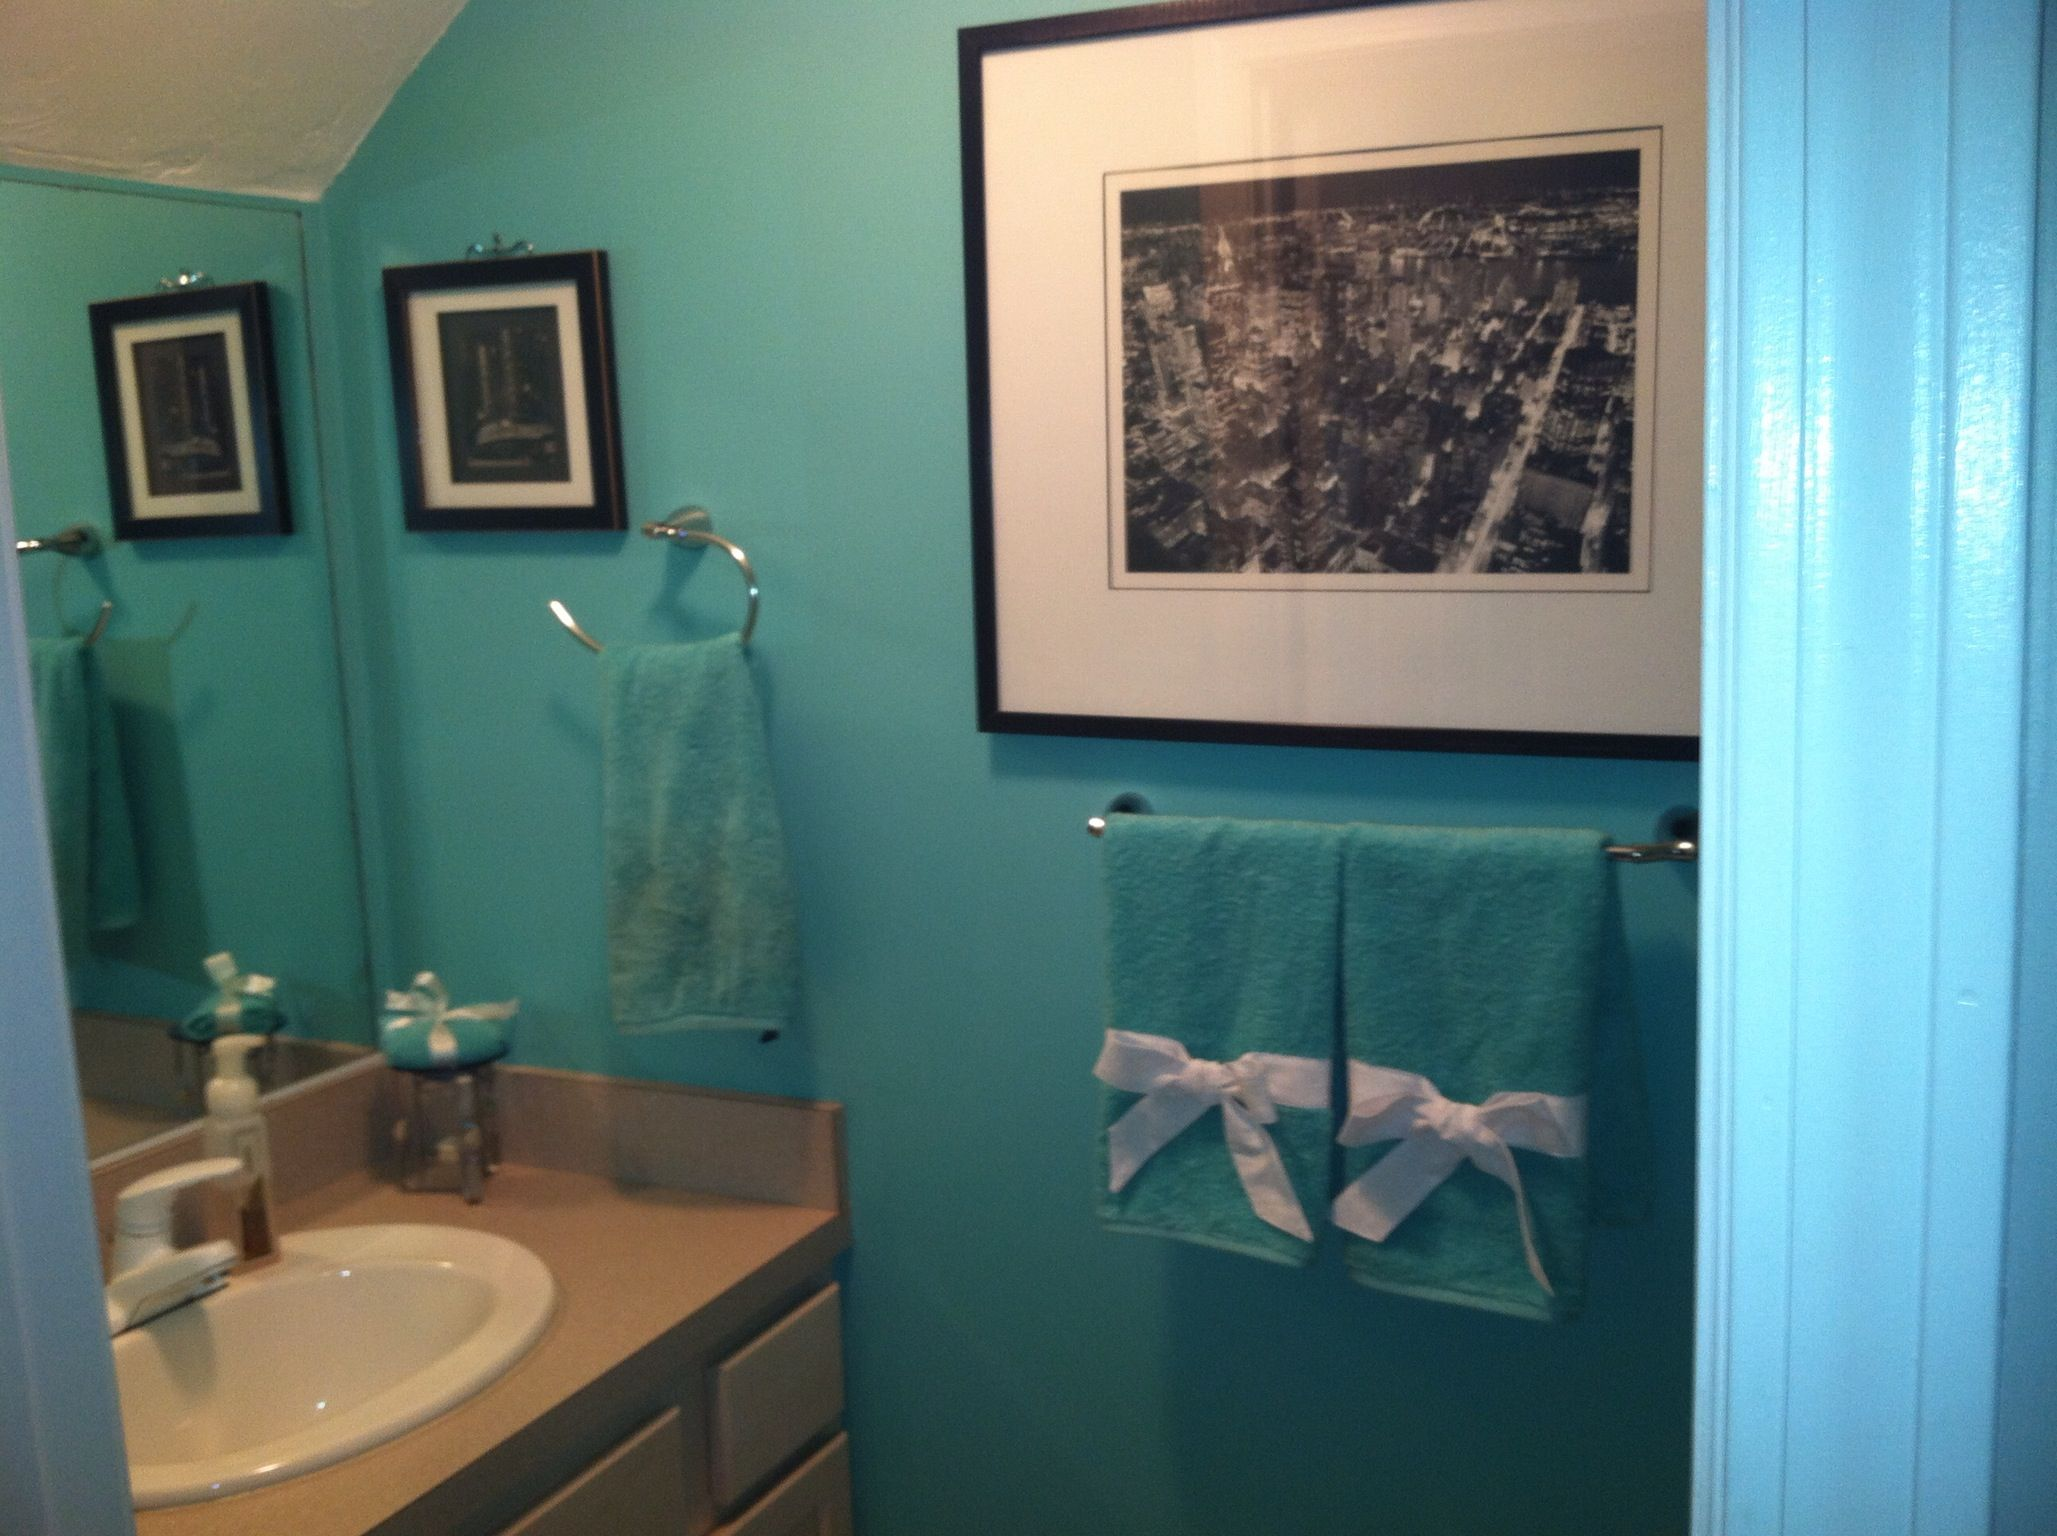 Themed Bathrooms Ideas Cute Decor Towel Idea For Tiffany Themed Bathroom For